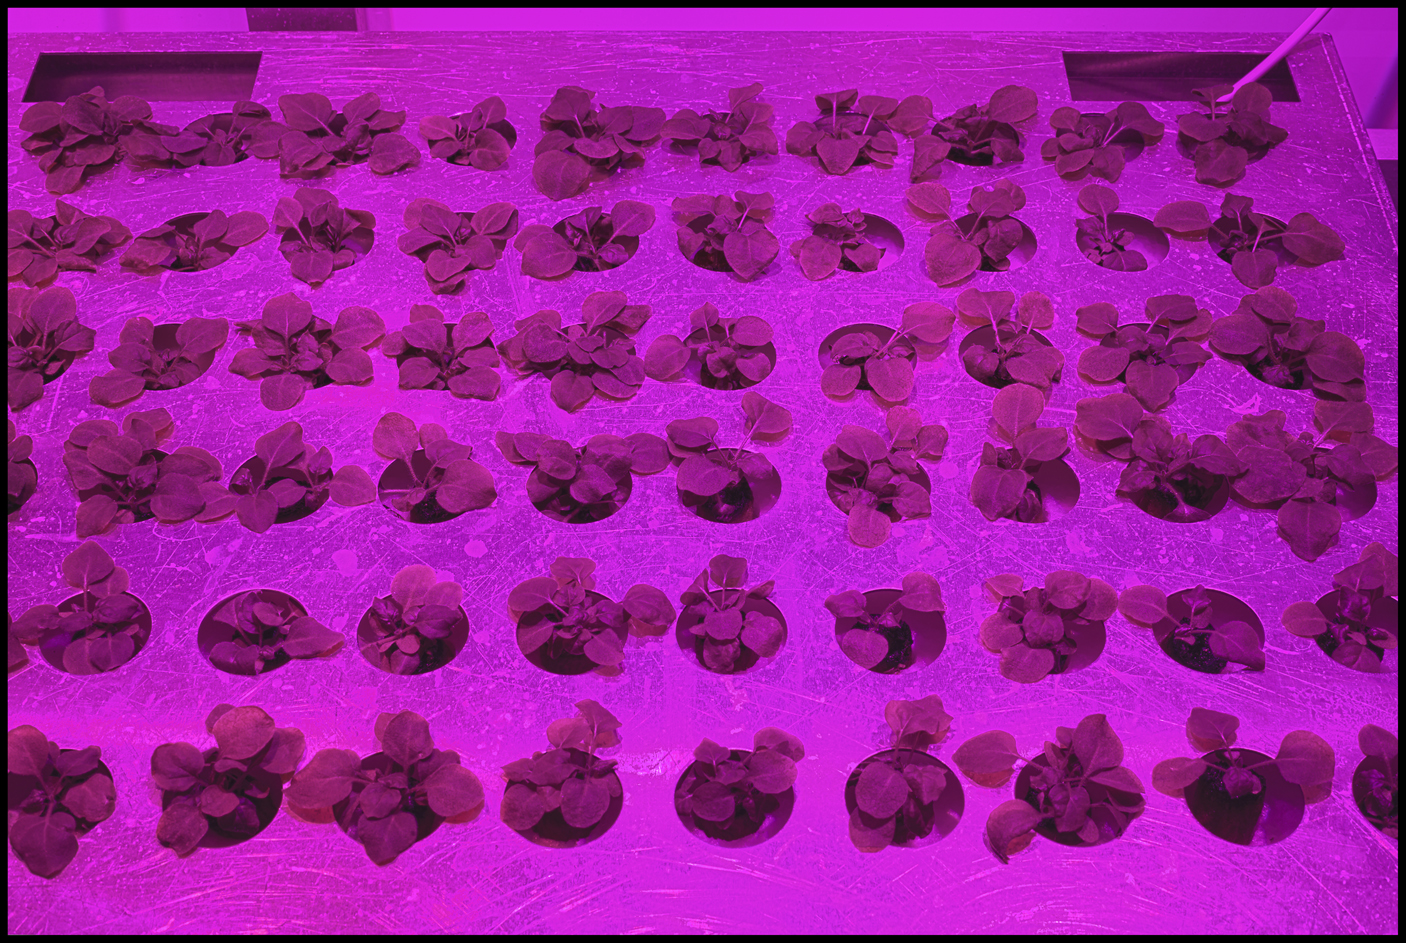 Caliber can produce an antibody-infused tobacco plant in just weeks.